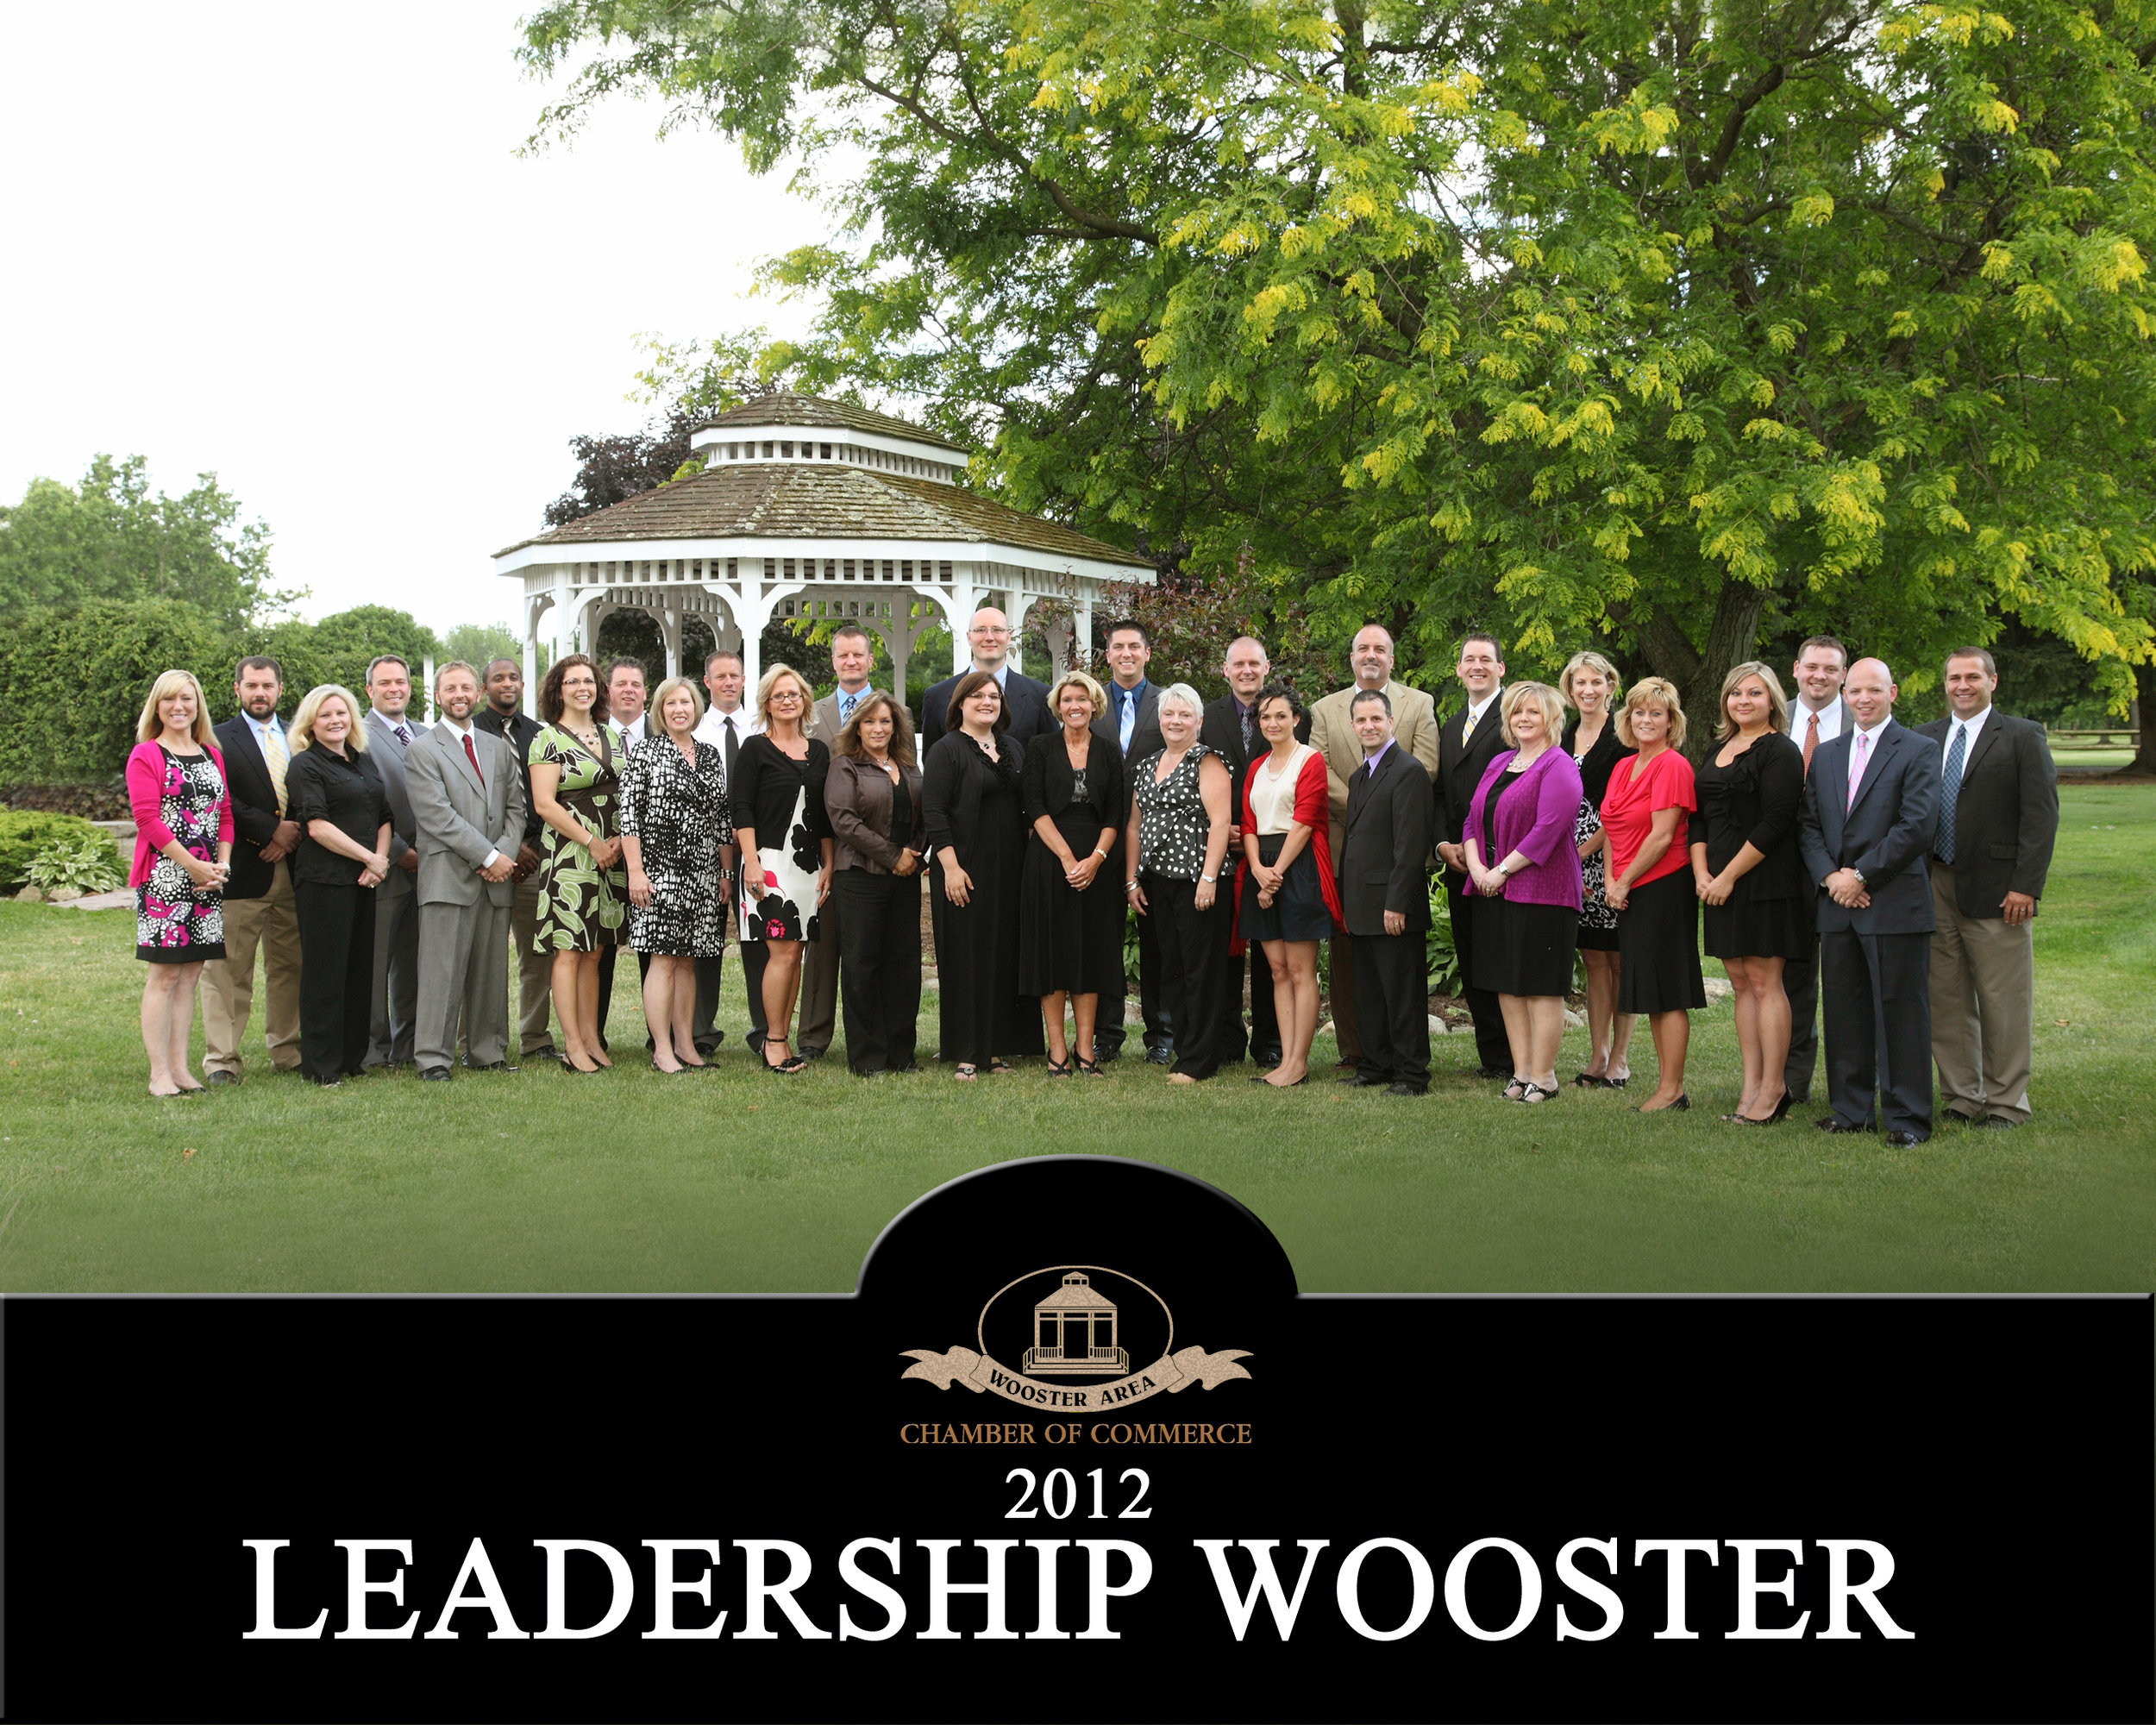 Leadership Wooster 2012.jpg